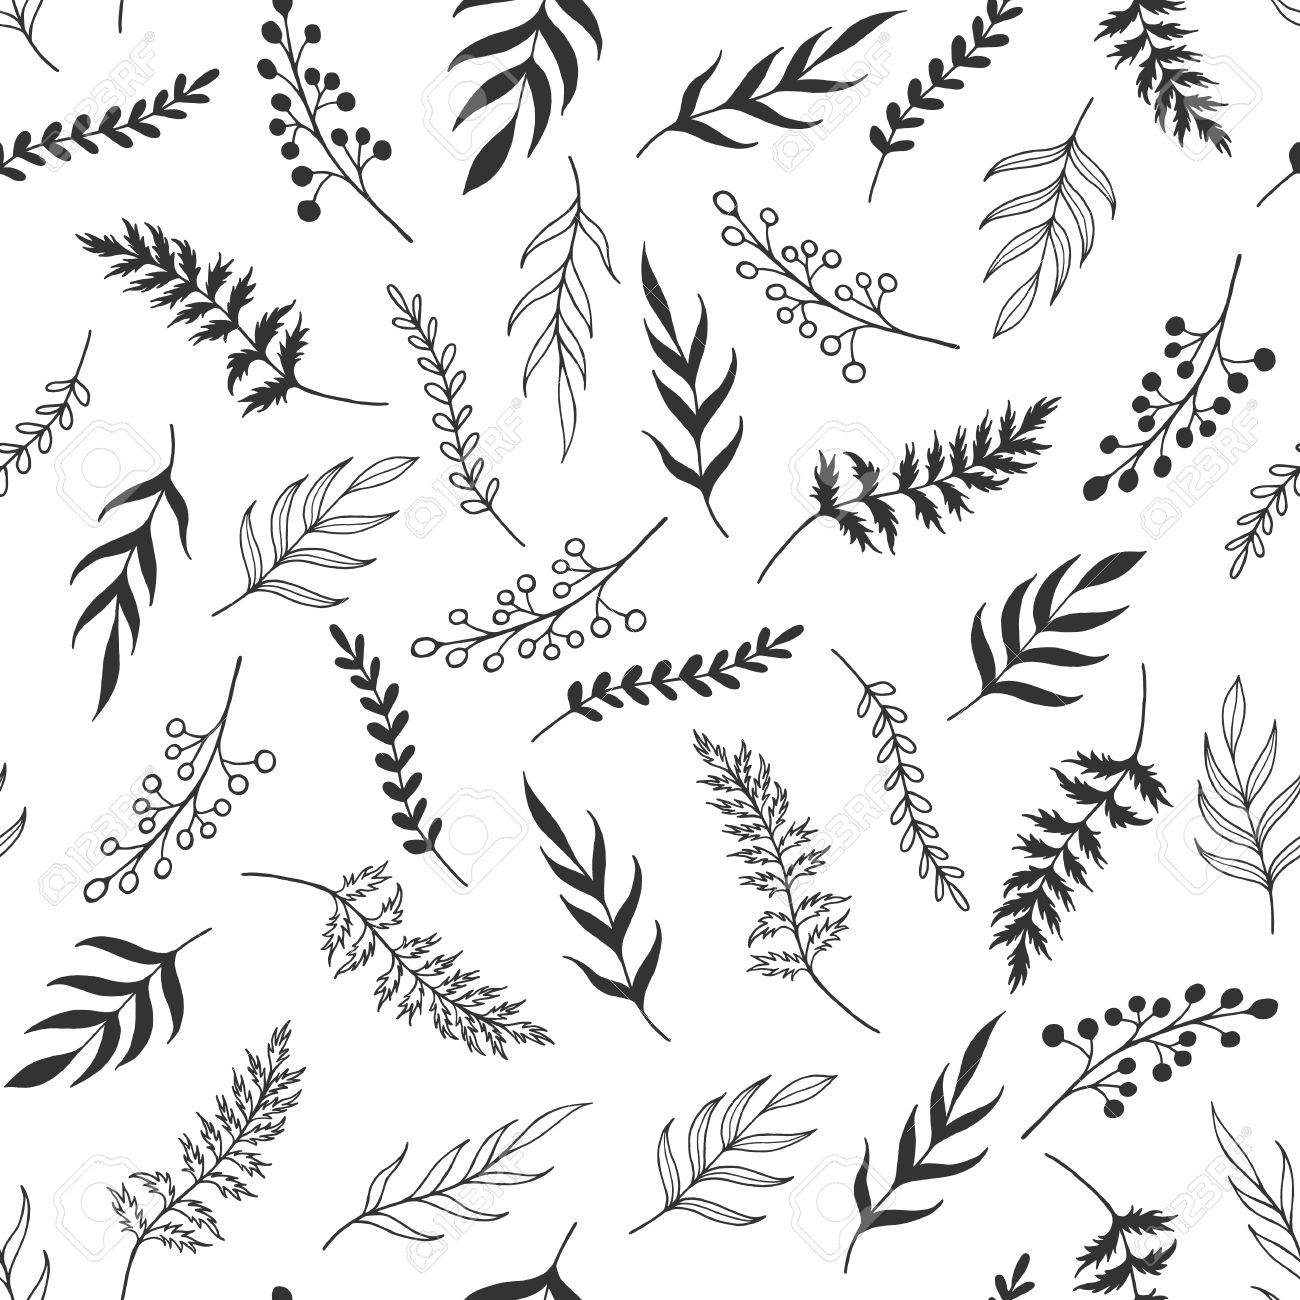 Seamless Pattern Black And White Herb Monochrome Leaves Pattern